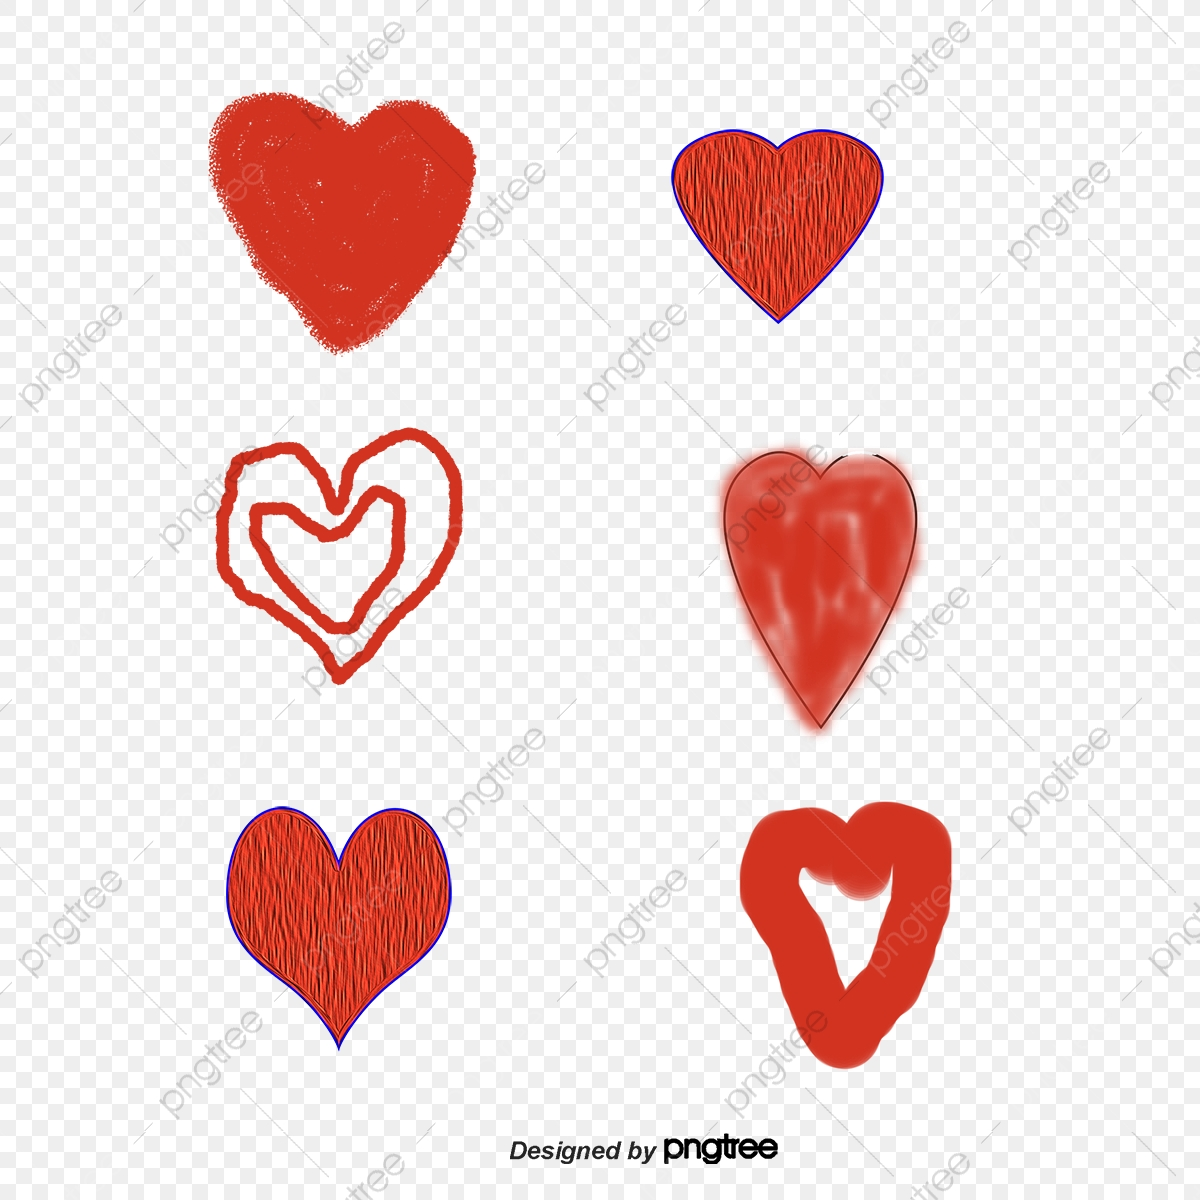 Vector Hand Drawn Hearts Heart Shaped Heart Hearts Png Transparent Clipart Image And Psd File For Free Download Use to make your decorative products. https pngtree com freepng vector hand drawn hearts 1054947 html